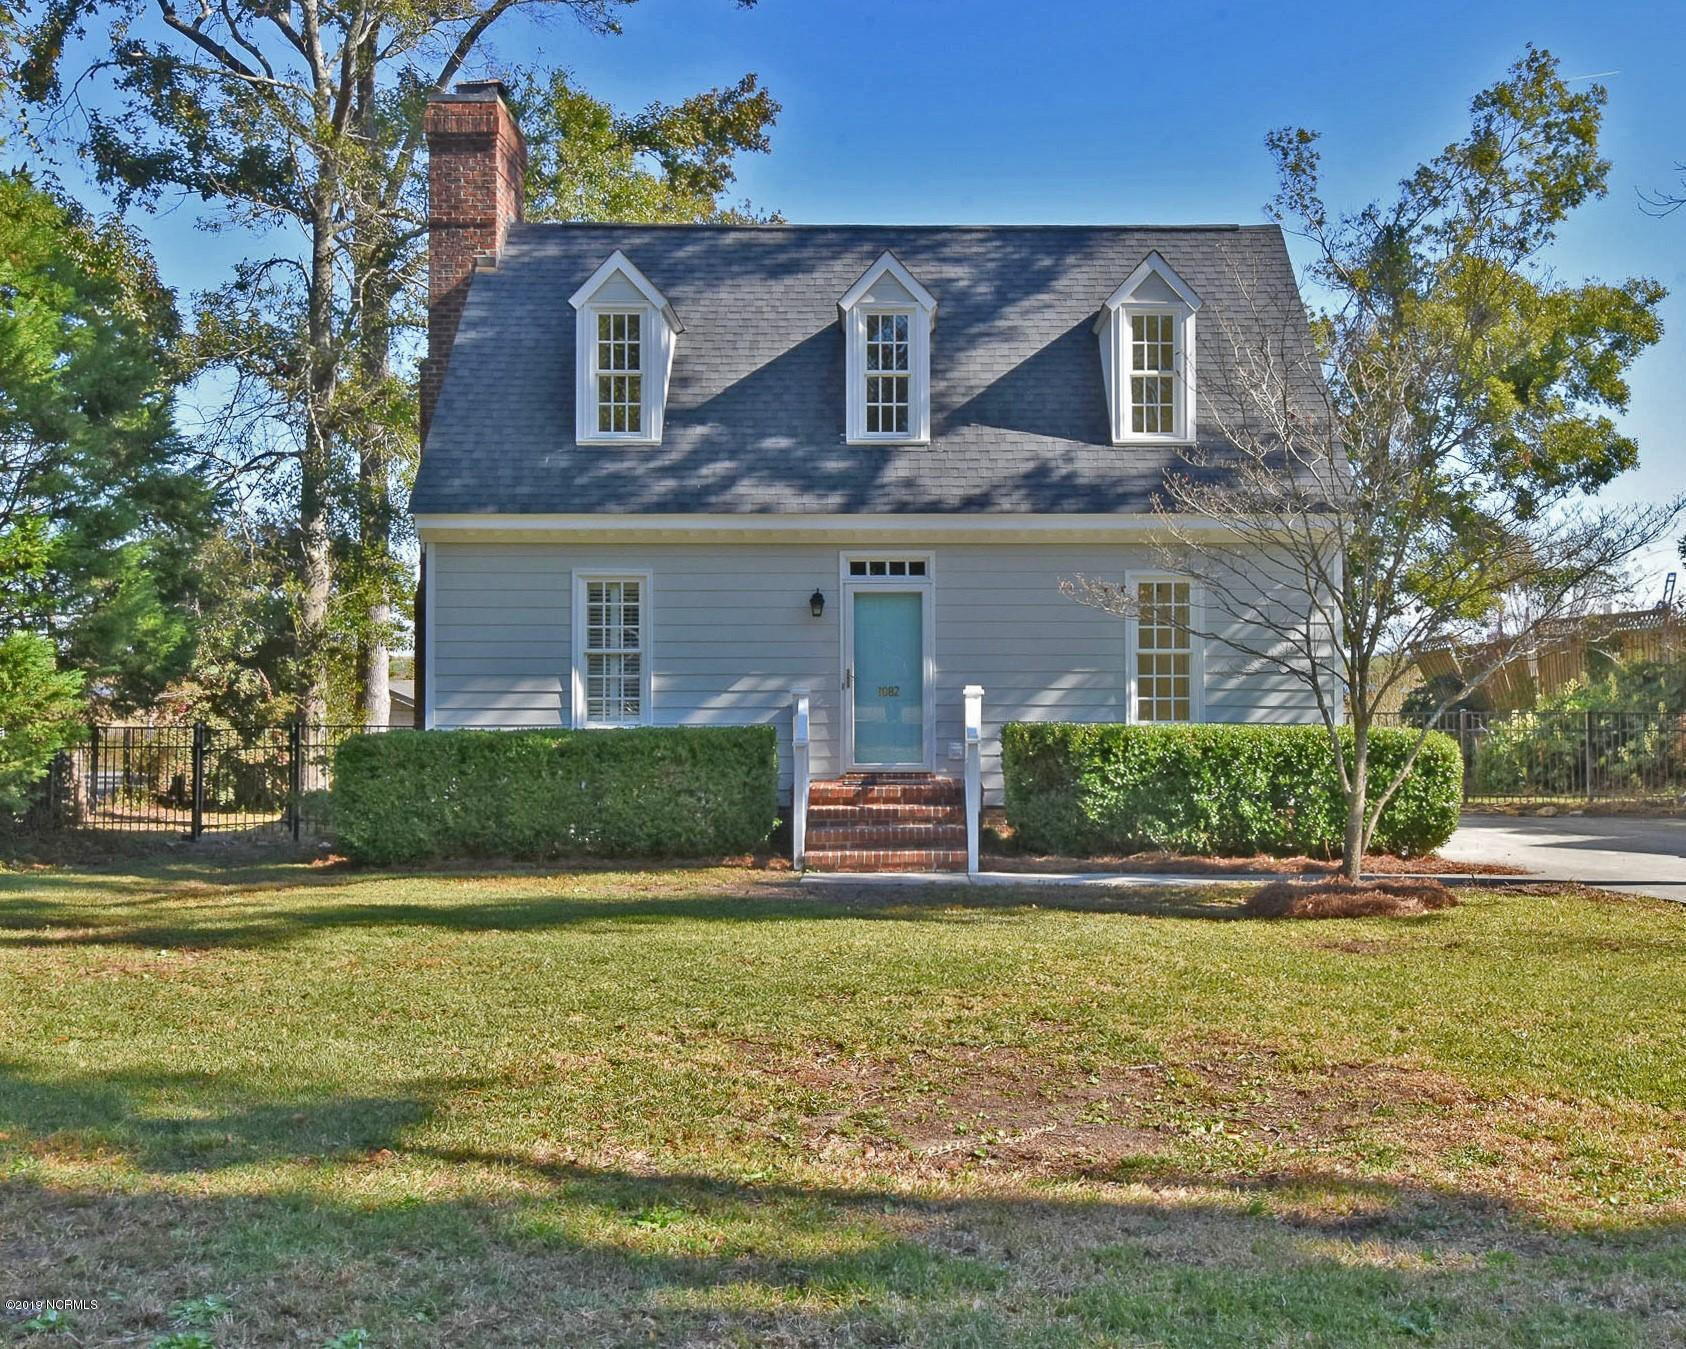 1082 Thistle Downs Leland, NC 28451